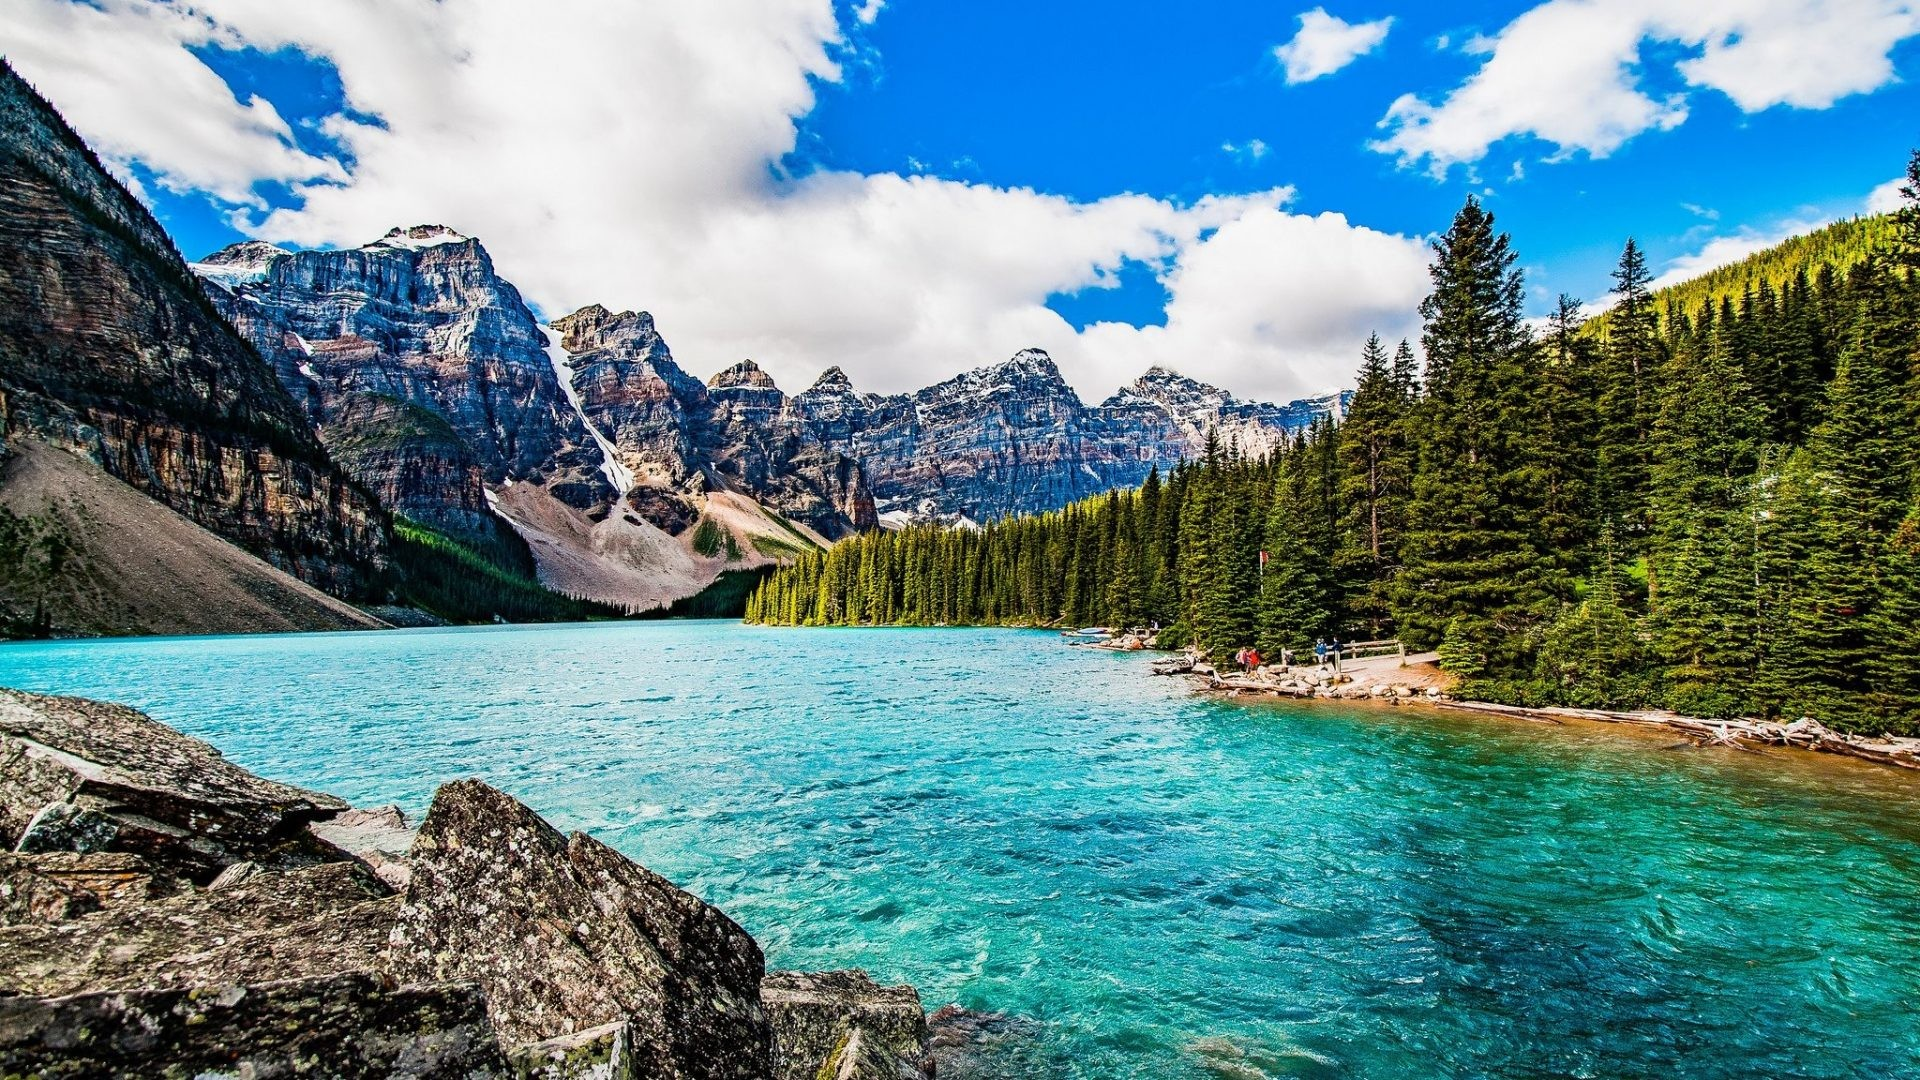 4k ultra hd nature wallpaper 67 images - Hd wallpapers 1920x1080 nature ...